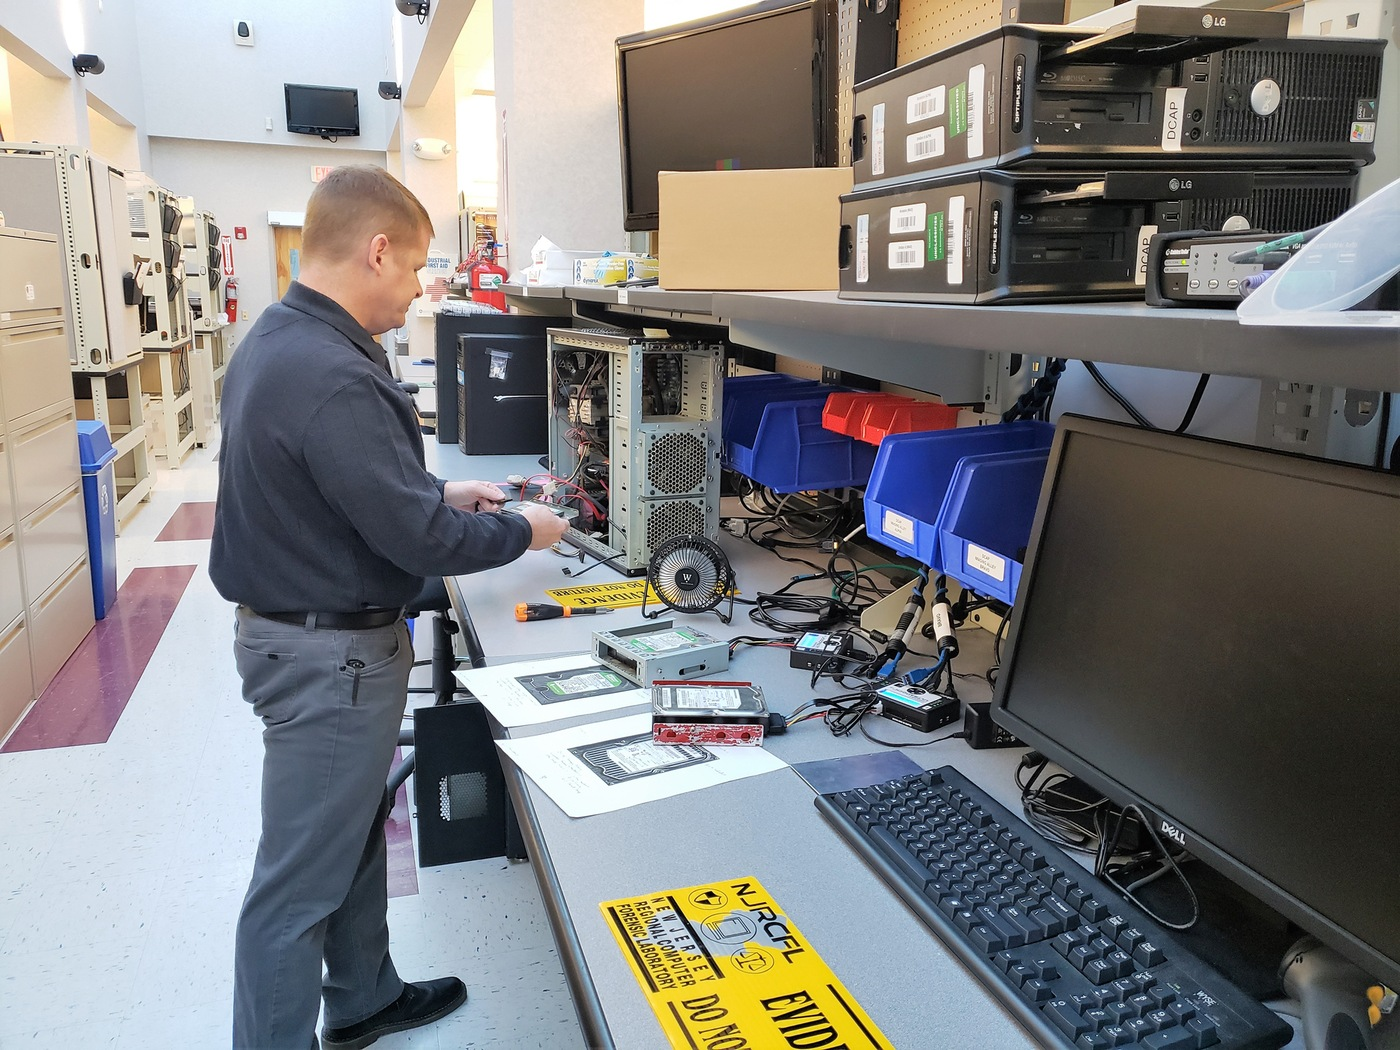 A digital forensics examiner works with evidence in the New Jersey Regional Computer Forensics Laboratory